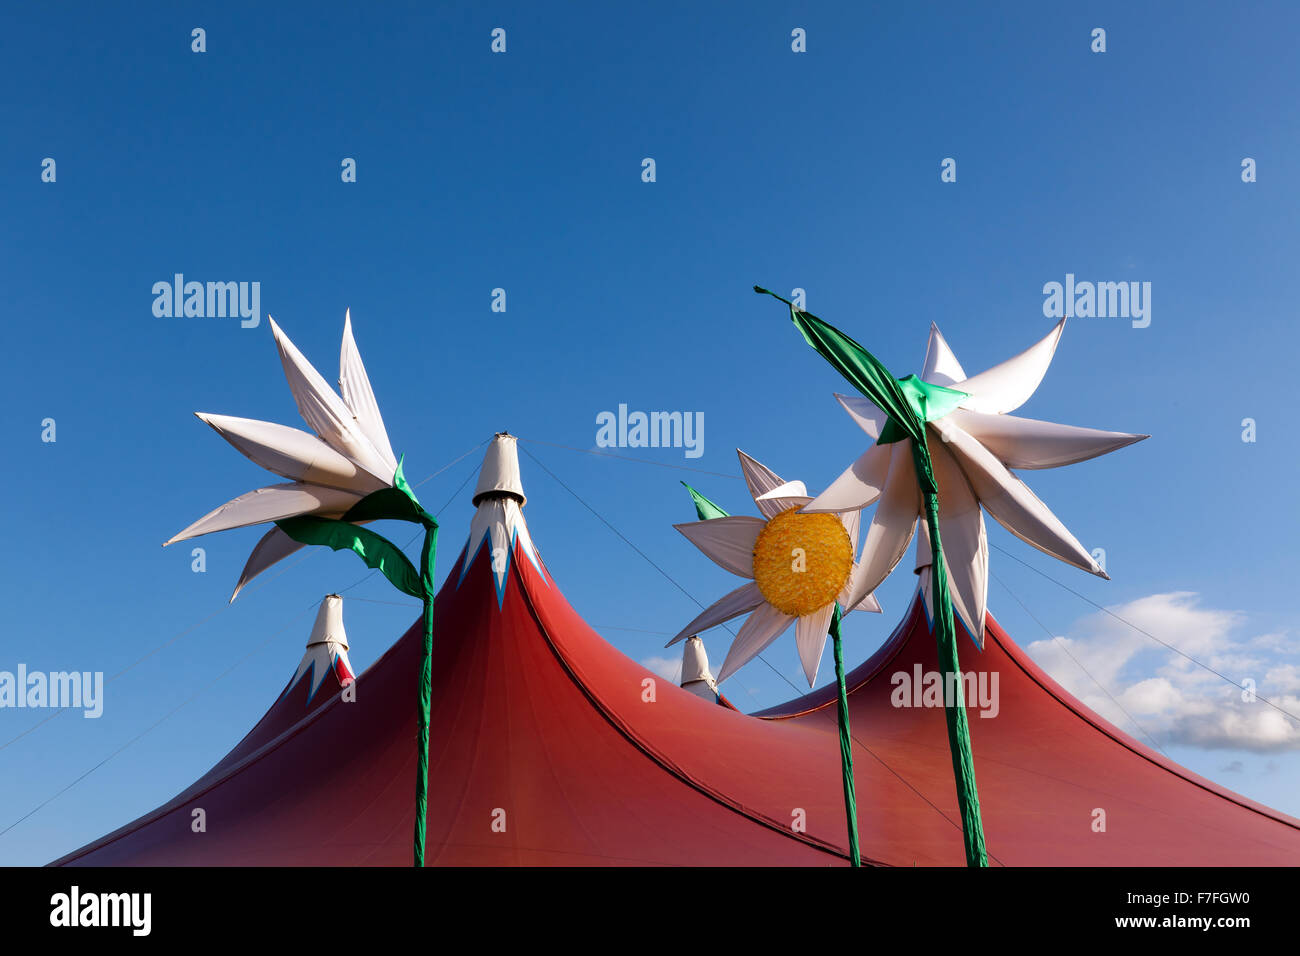 View of the roof of the Heavenly & Friends Gilles Paterson Worldwide Stage/Tent at the On Blackheath Music Festival - Stock Image